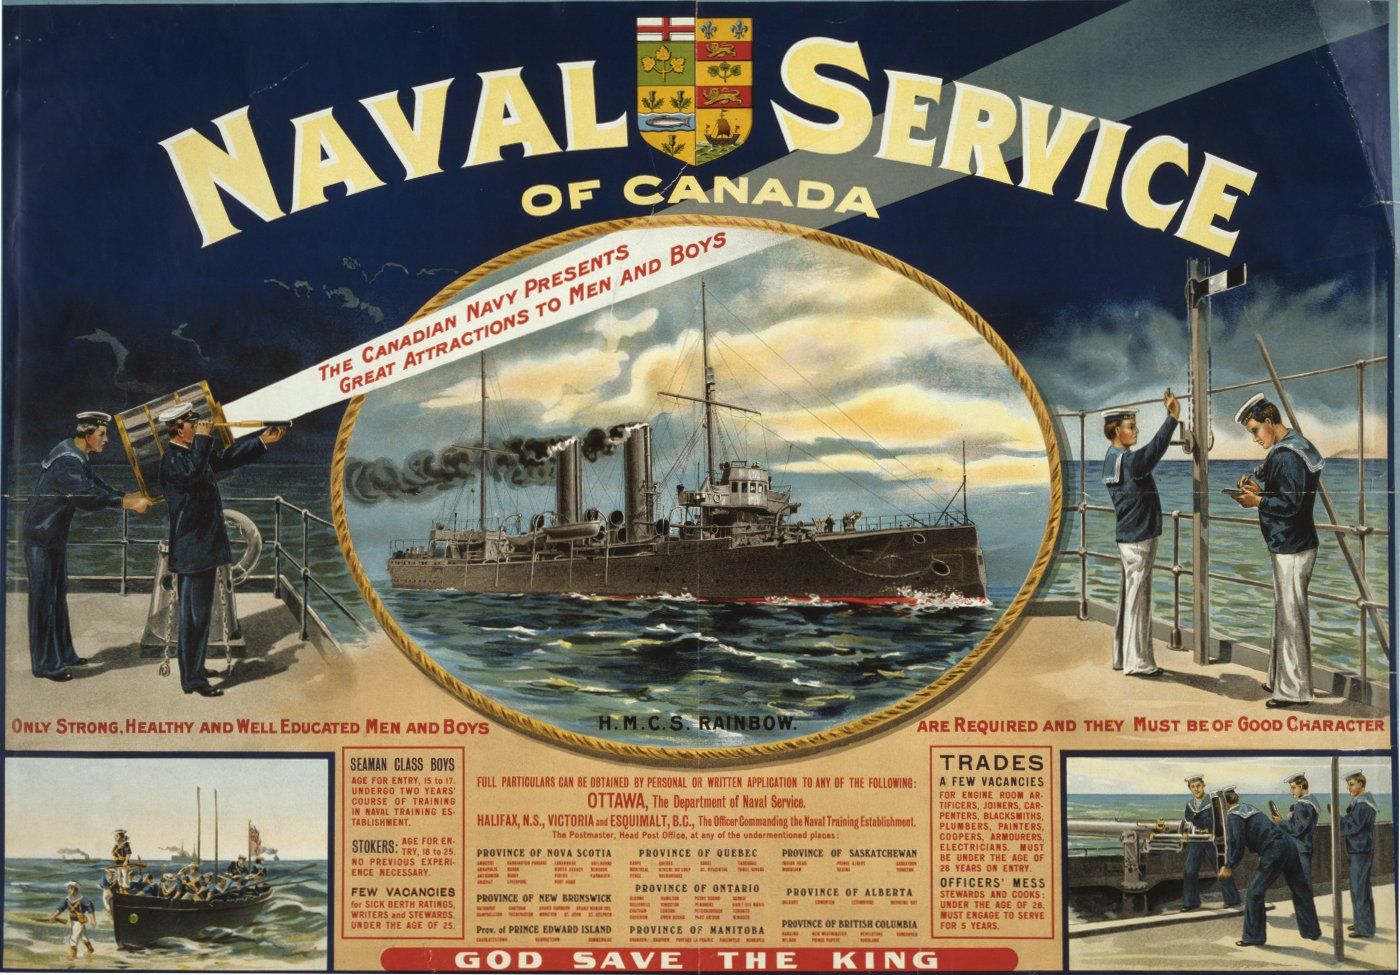 A recruiting poster for the Naval Service of Canada, featuring the HMCS Rainbow. Courtesy of the Library of Congress Prints and Photographs Division.